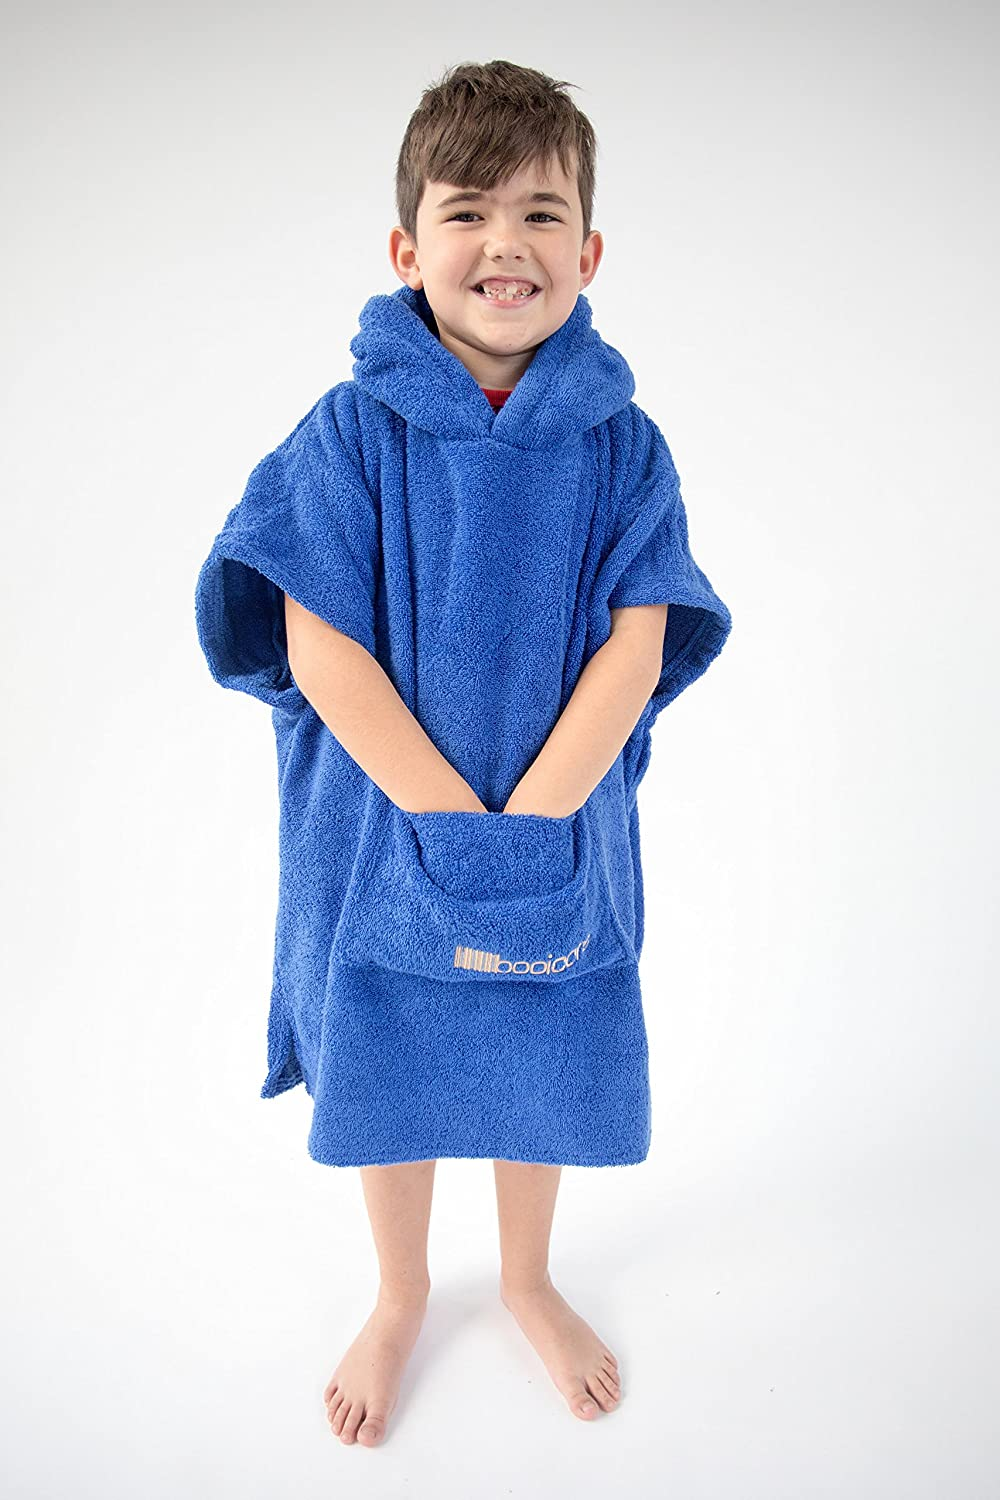 booicore Kids Changing Towel/Robe